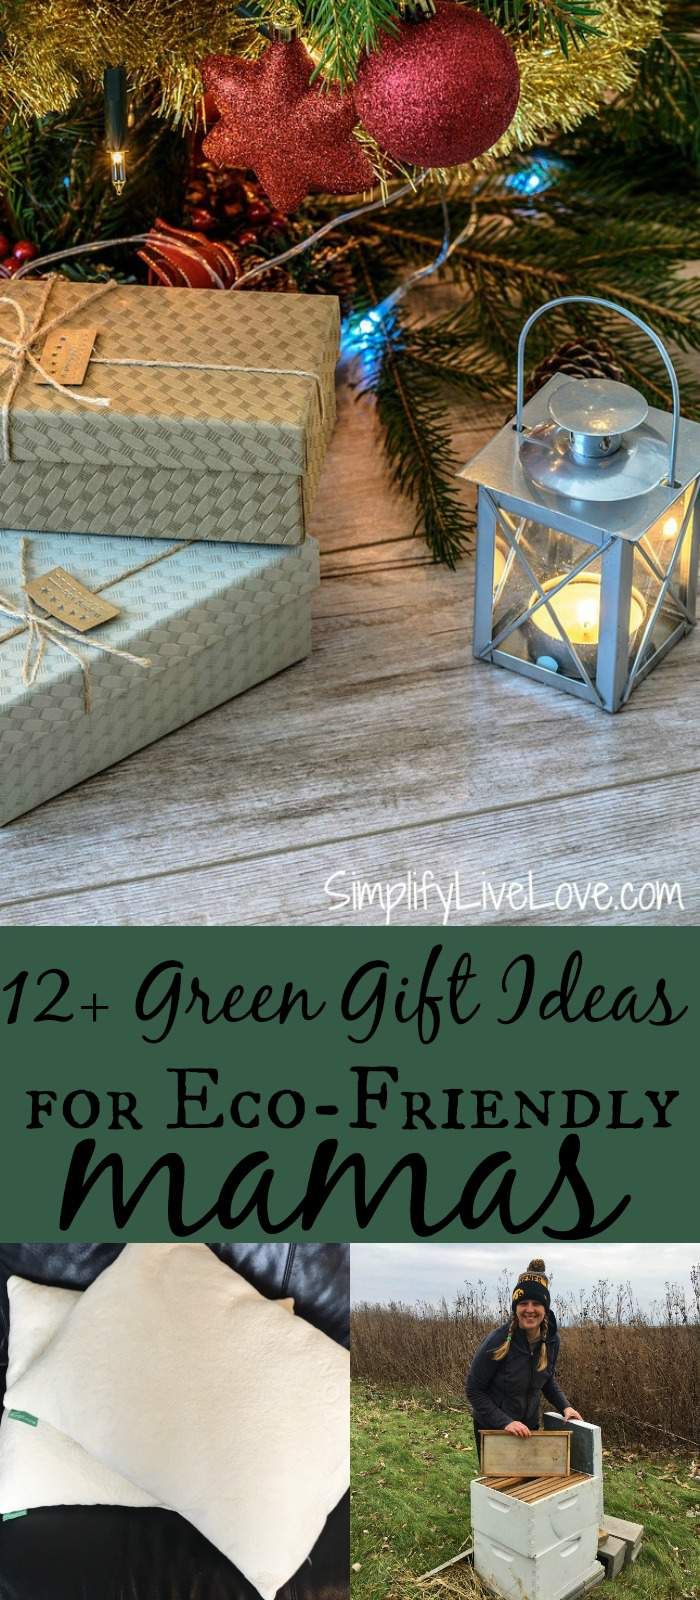 Do you consider yourself a crunchy mom or know someone who is? Here are 12+ green gift ideas for eco-friendly mamas to feel good about giving OR receiving! #greeneverywhere